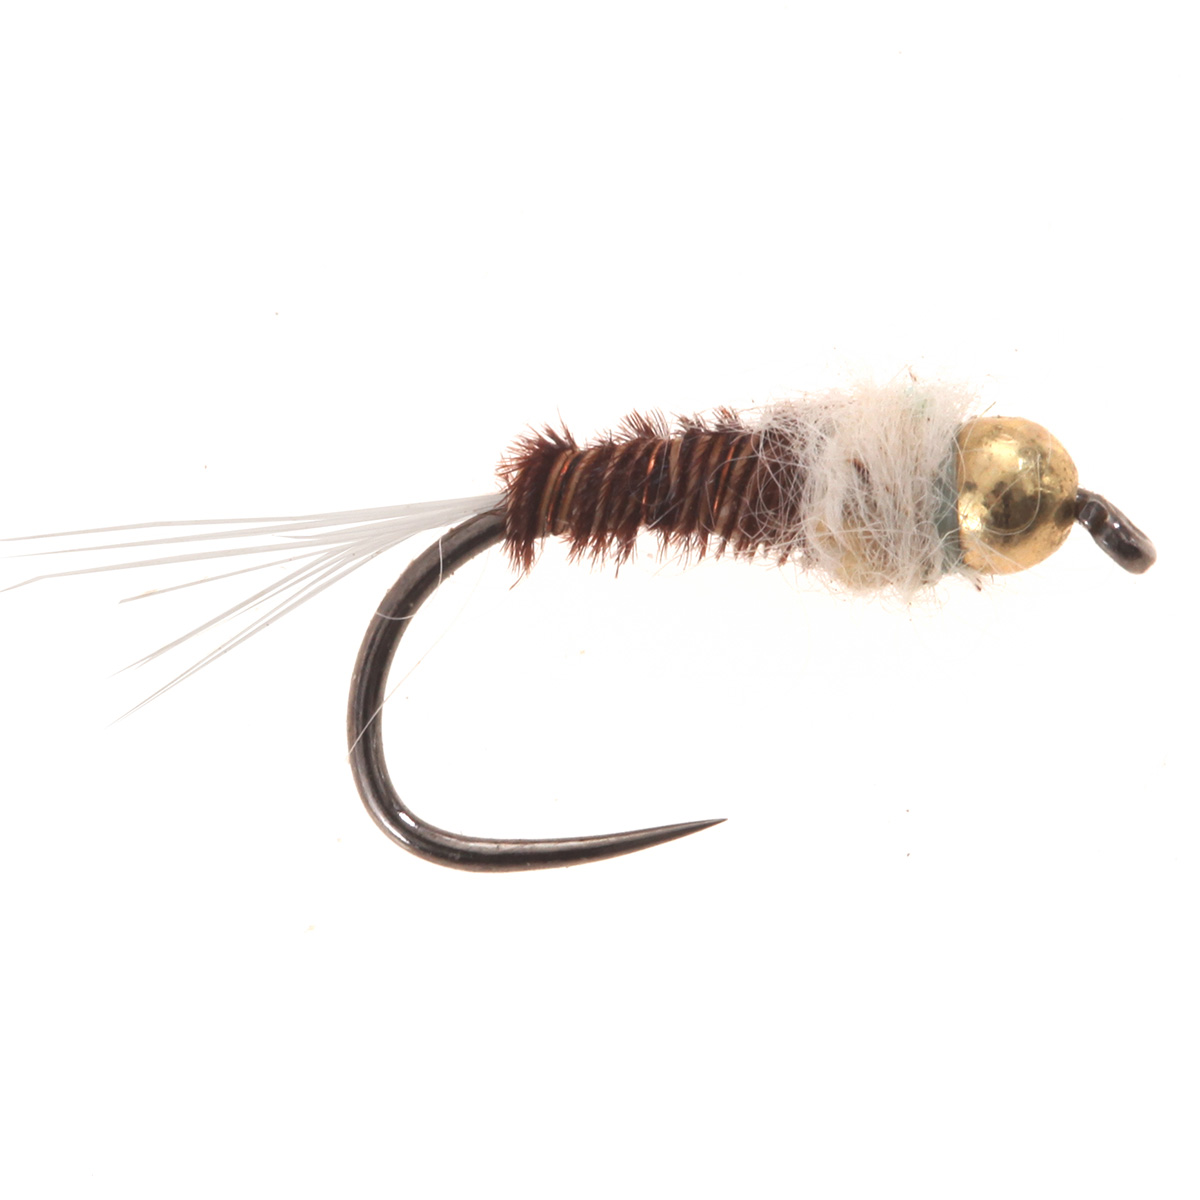 Tungsten BH Micro Nymph Claret white tail #16